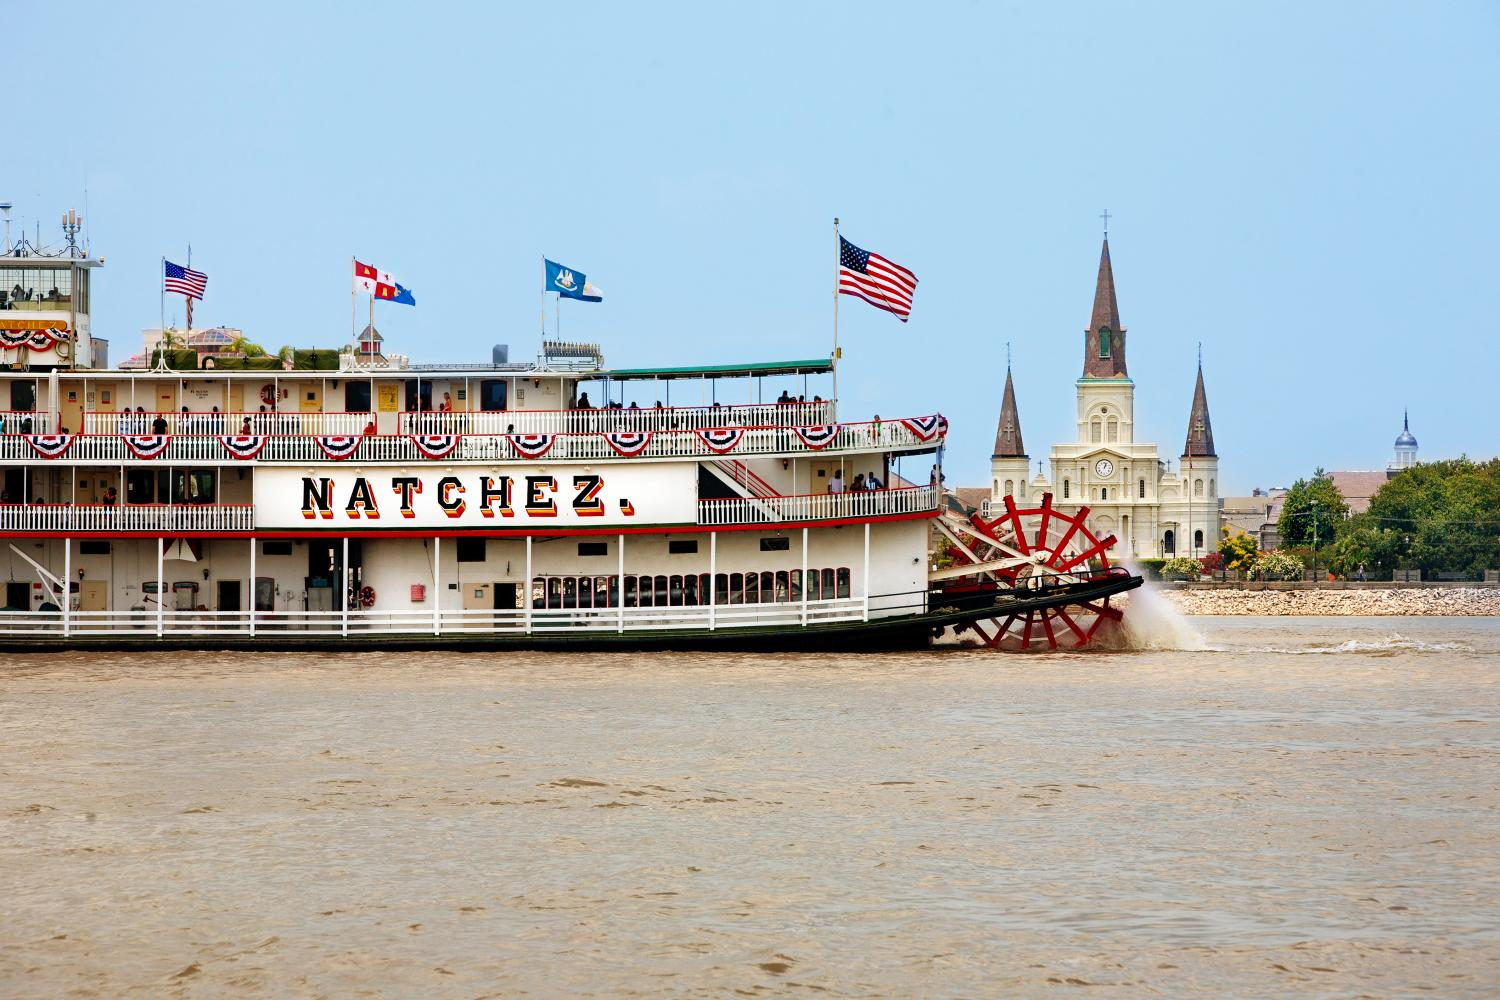 New Orleans Steamboat Natchez Sunday Jazz Cruise With Brunch